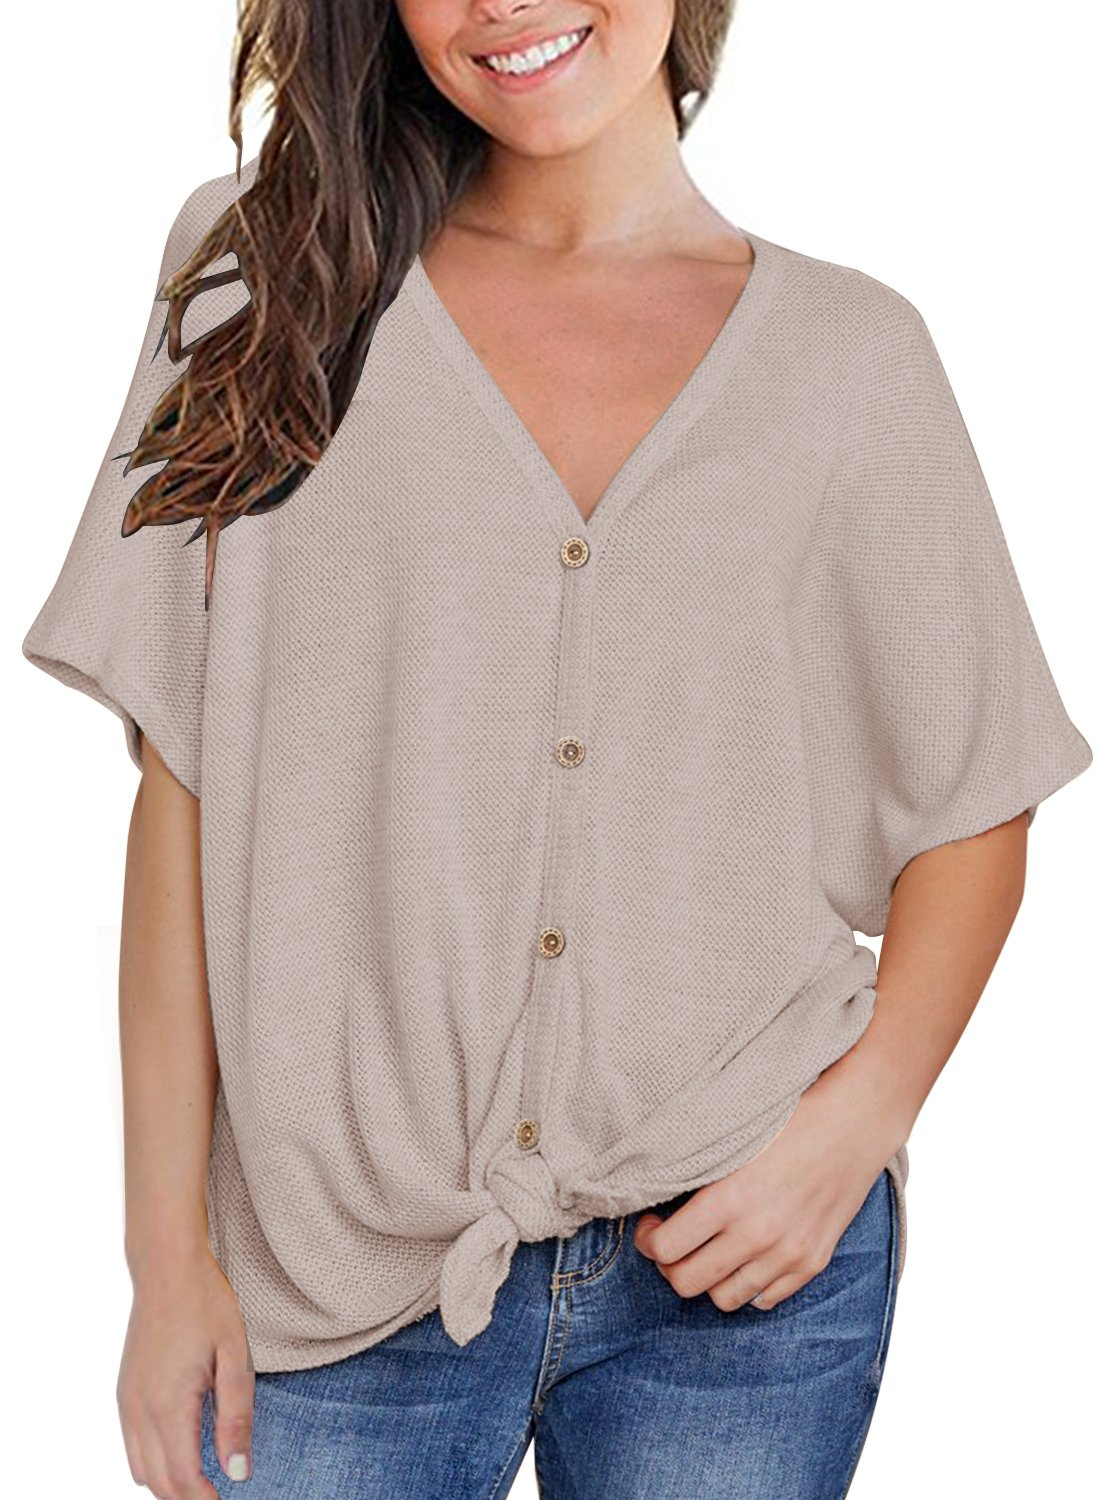 MIHOLL Womens Loose Blouse Short Sleeve V Neck Button Down T Shirts Tie Front Knot Casual Tops (Medium, Oatmeal)